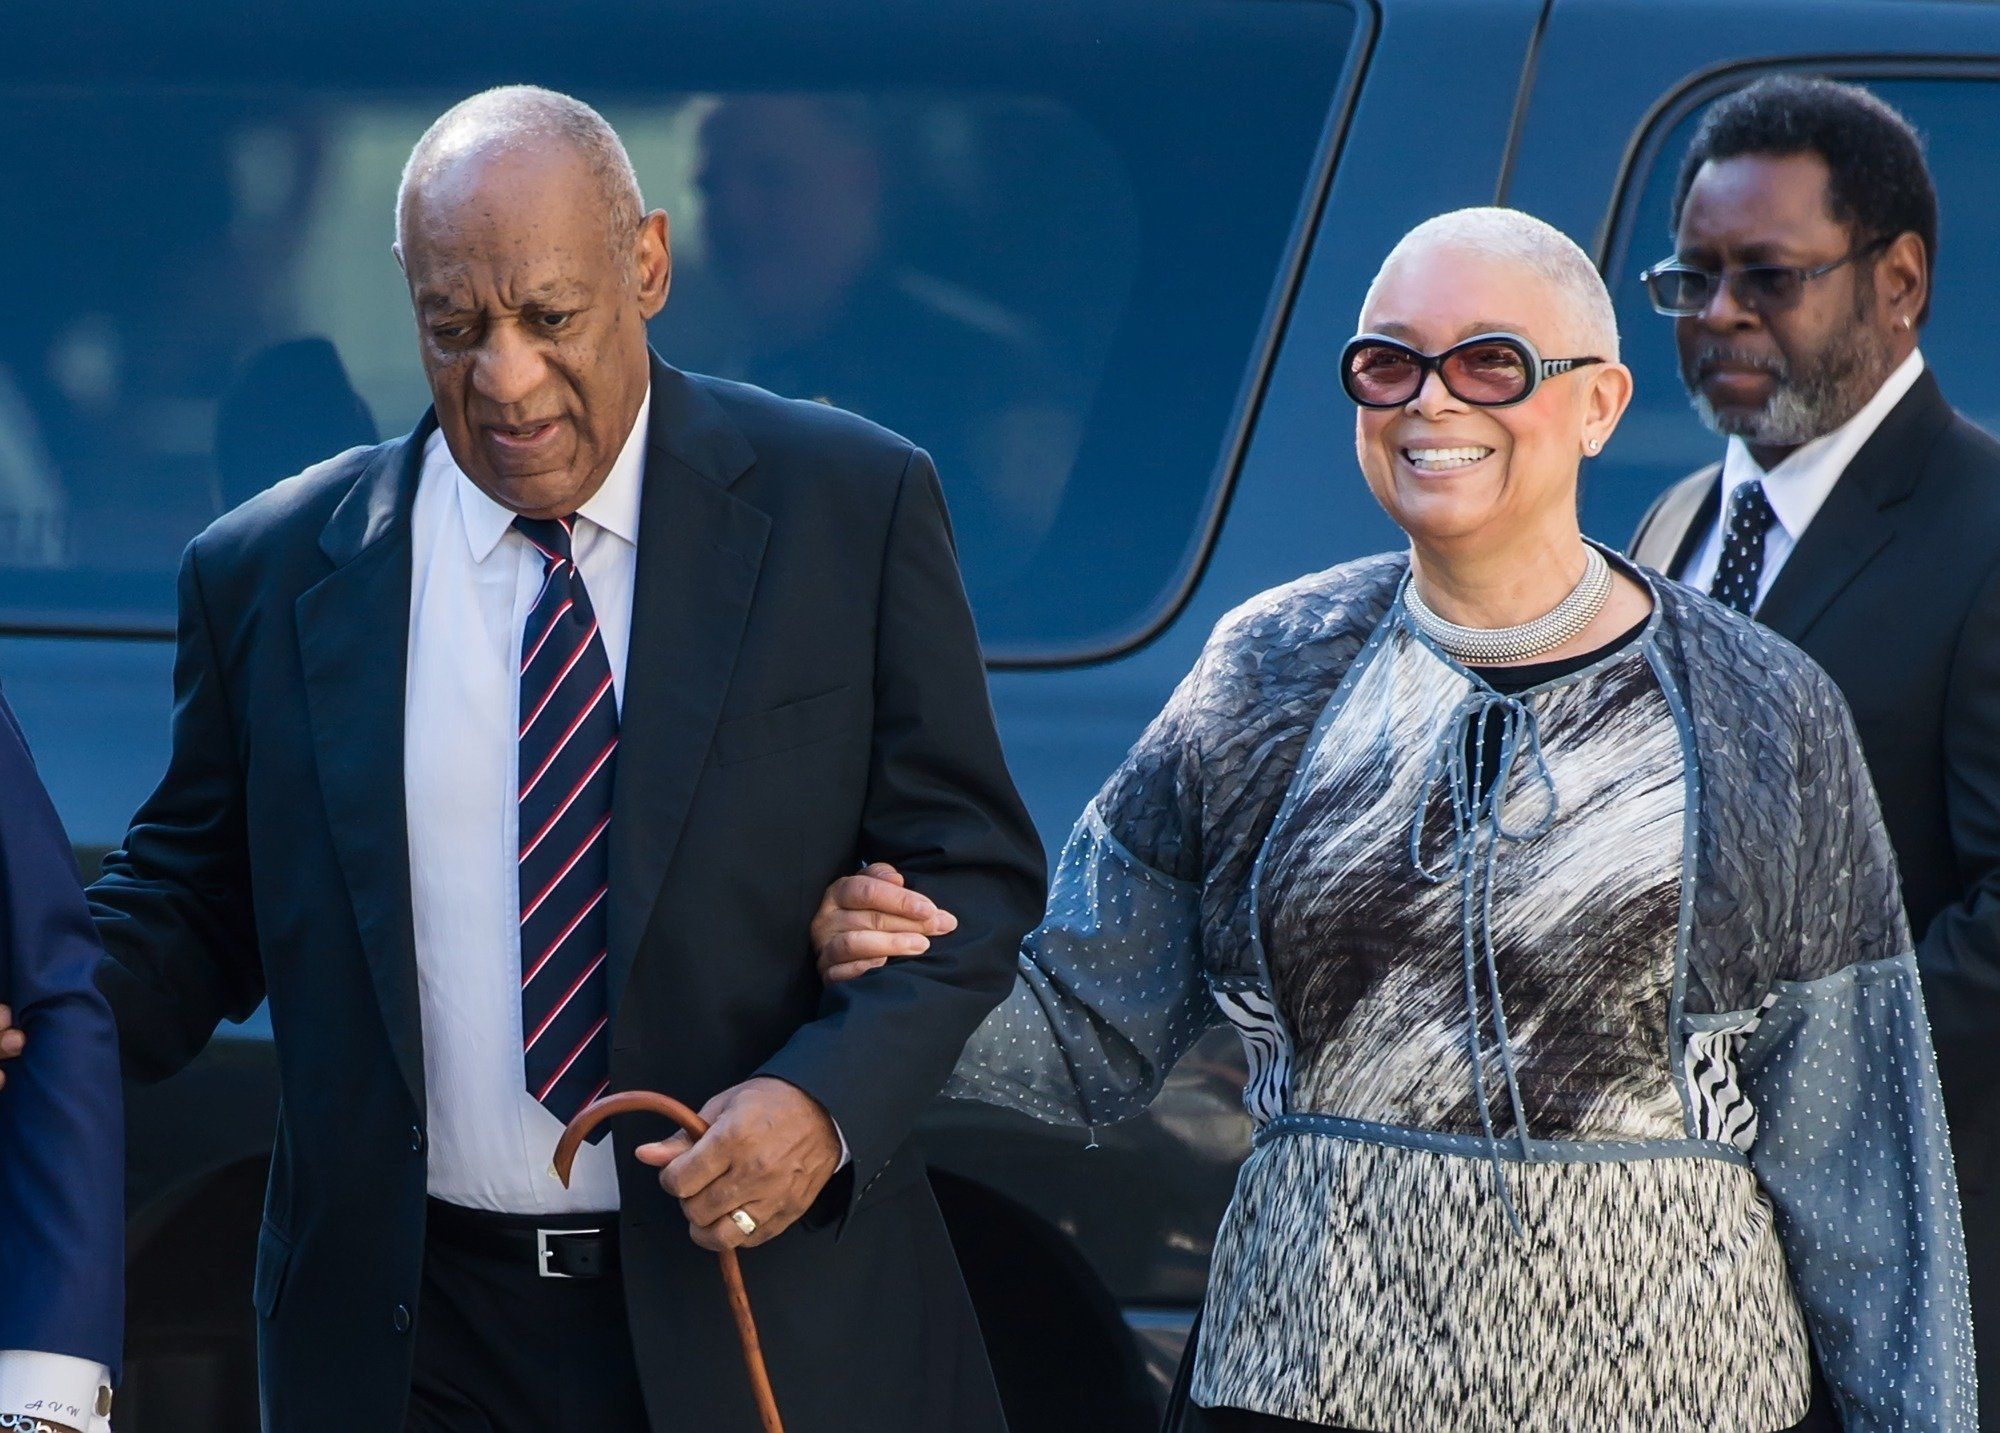 NORRISTOWN, PA - JUNE 12:  Actor Bill Cosby and wife Camille Cosby arrive at Bill Cosby Trial at Montgomery County Courthouse on June 12, 2017 in Norristown, Pennsylvania.  (Photo by Gilbert Carrasquillo/WireImage)